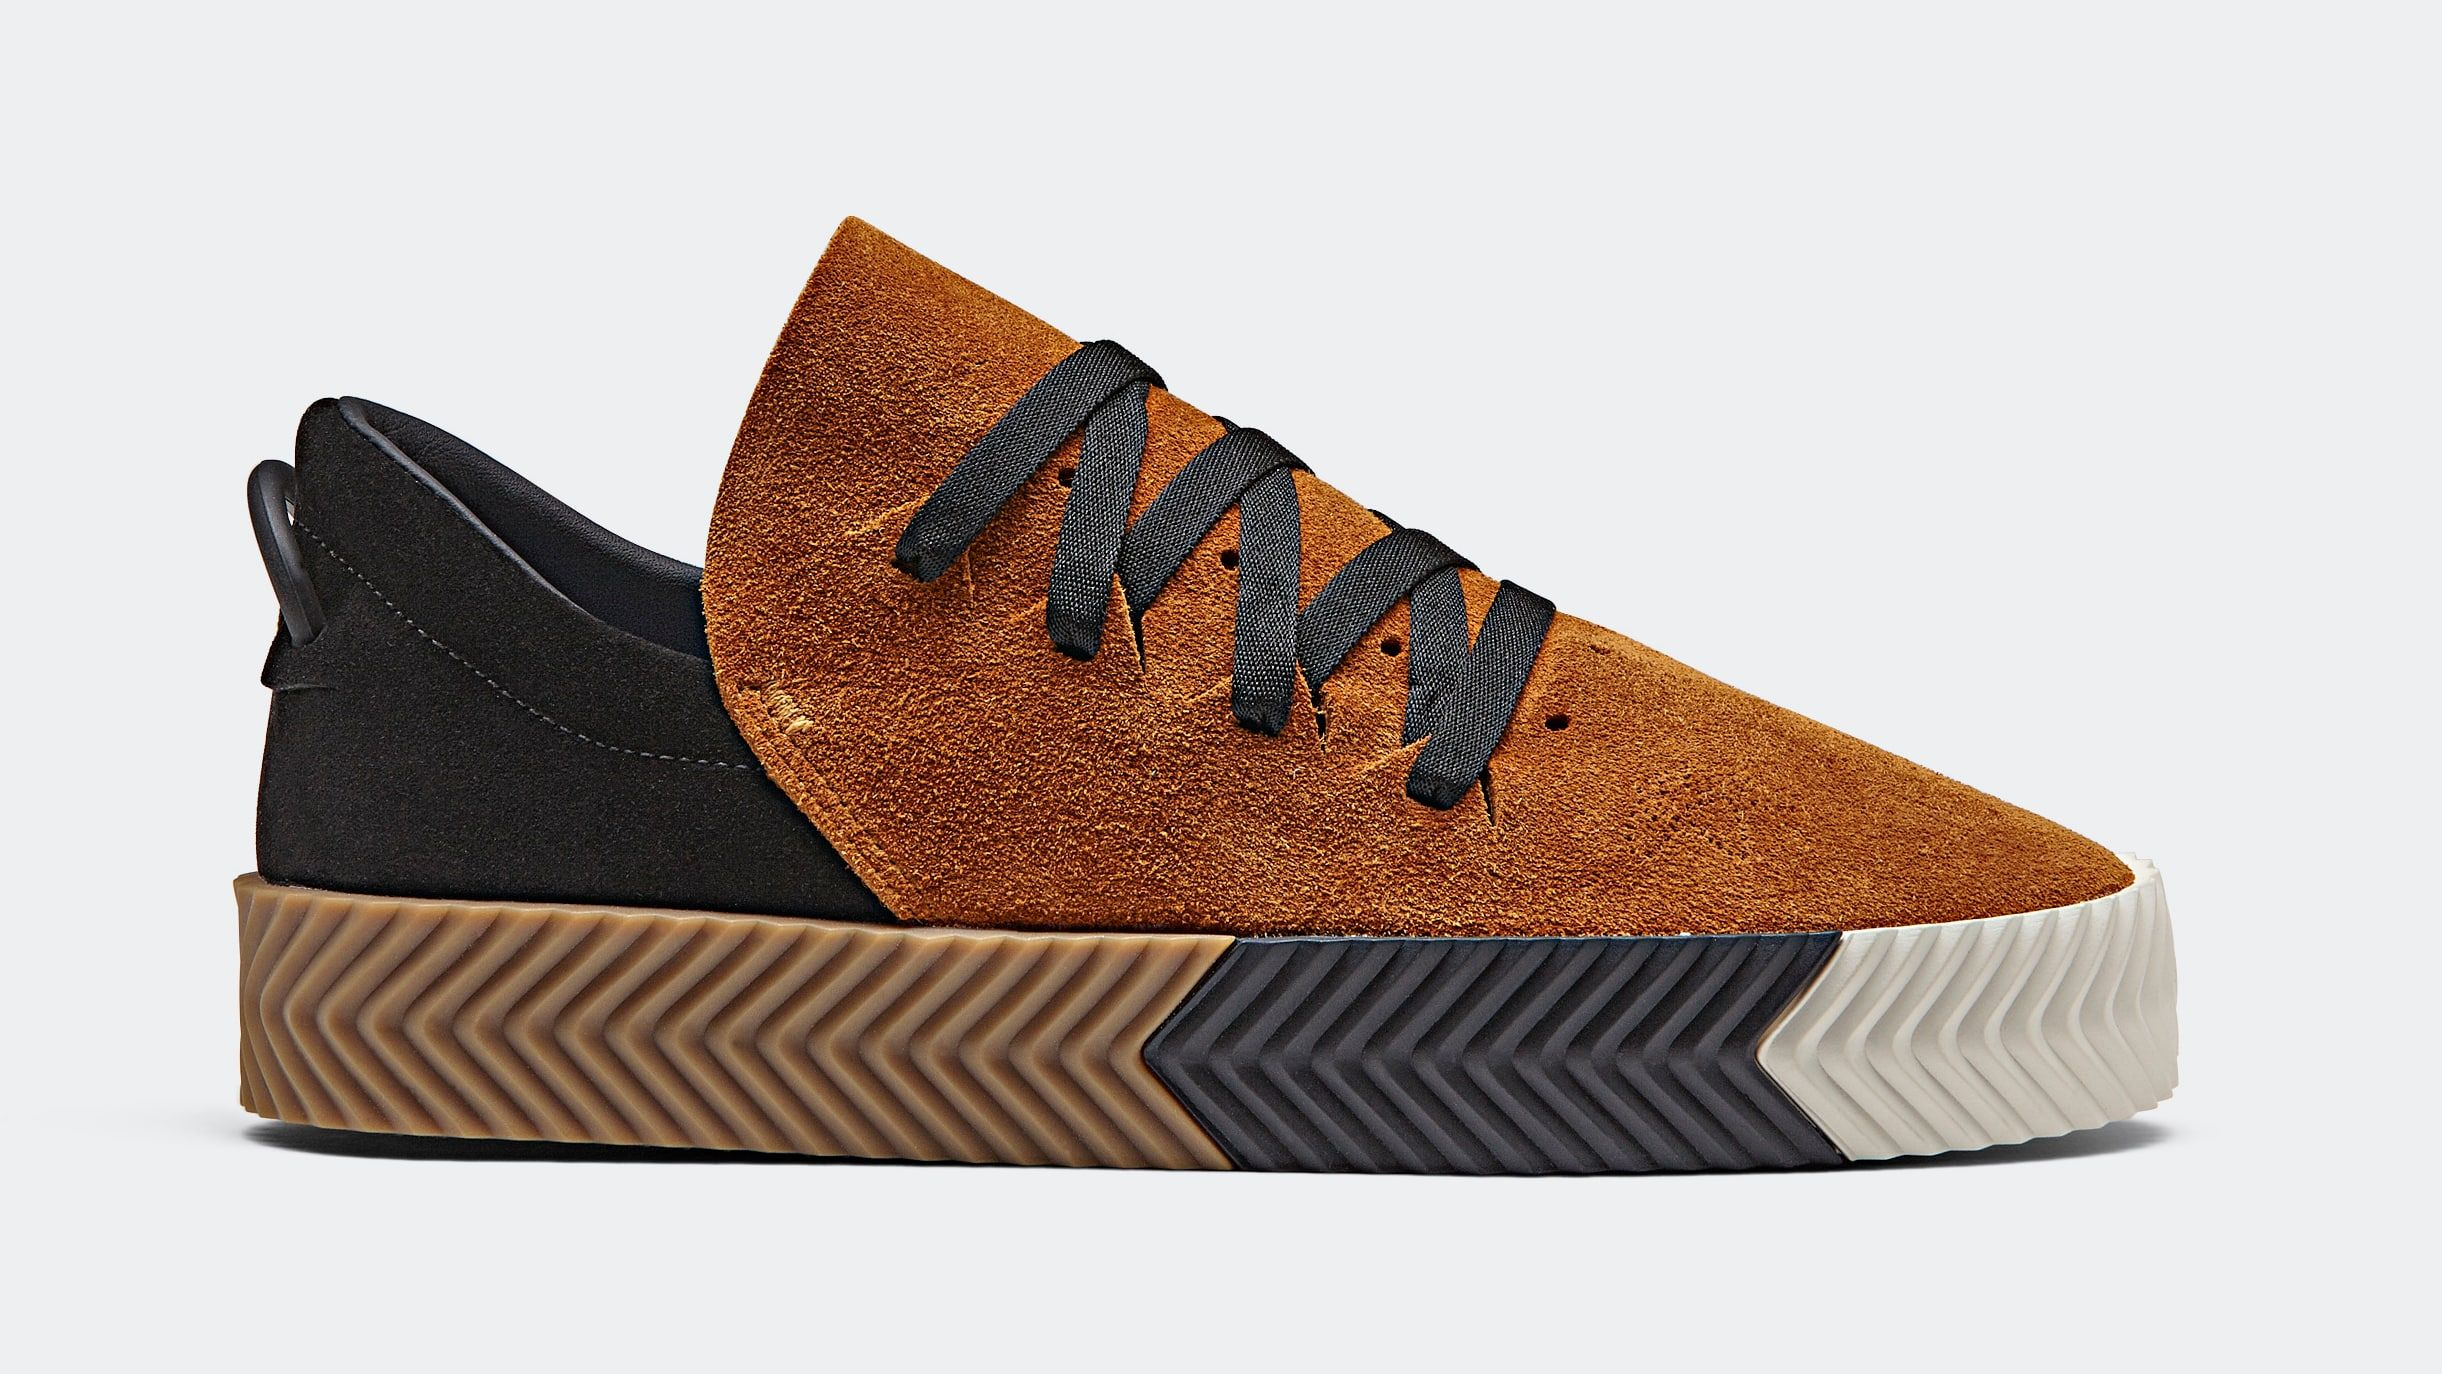 new product 6f8fc 29490 Alexander Wang x Adidas Skate and Basketball Sneakers